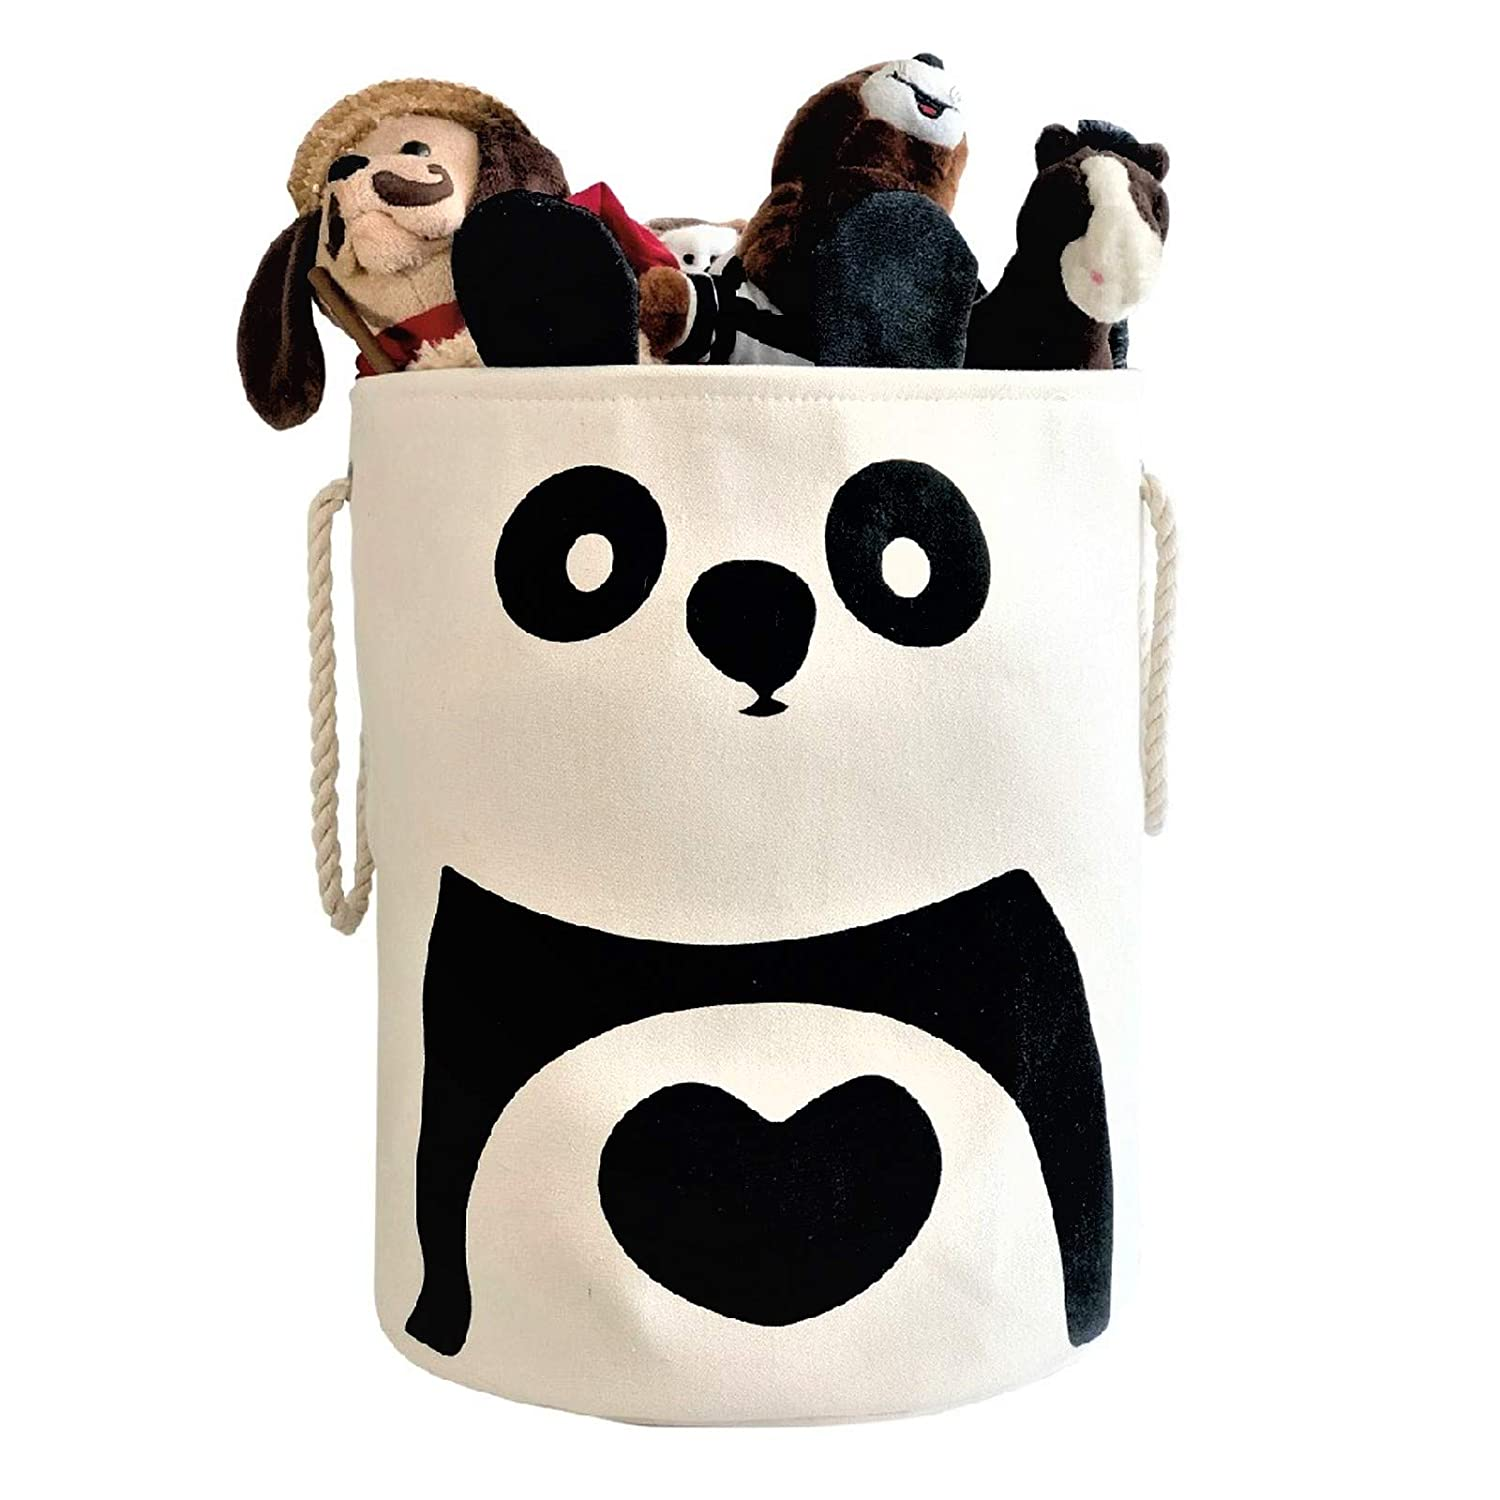 Gift Specialist | Baby Clothes Hamper, Panda Bear Nursery Hamper, Collapsible Laundry Basket, Toy Bins for Kids, Baby Hamper, Foldable Laundry Hamper, Bedroom, Nursery, Baby Baskets, Gift Baskets